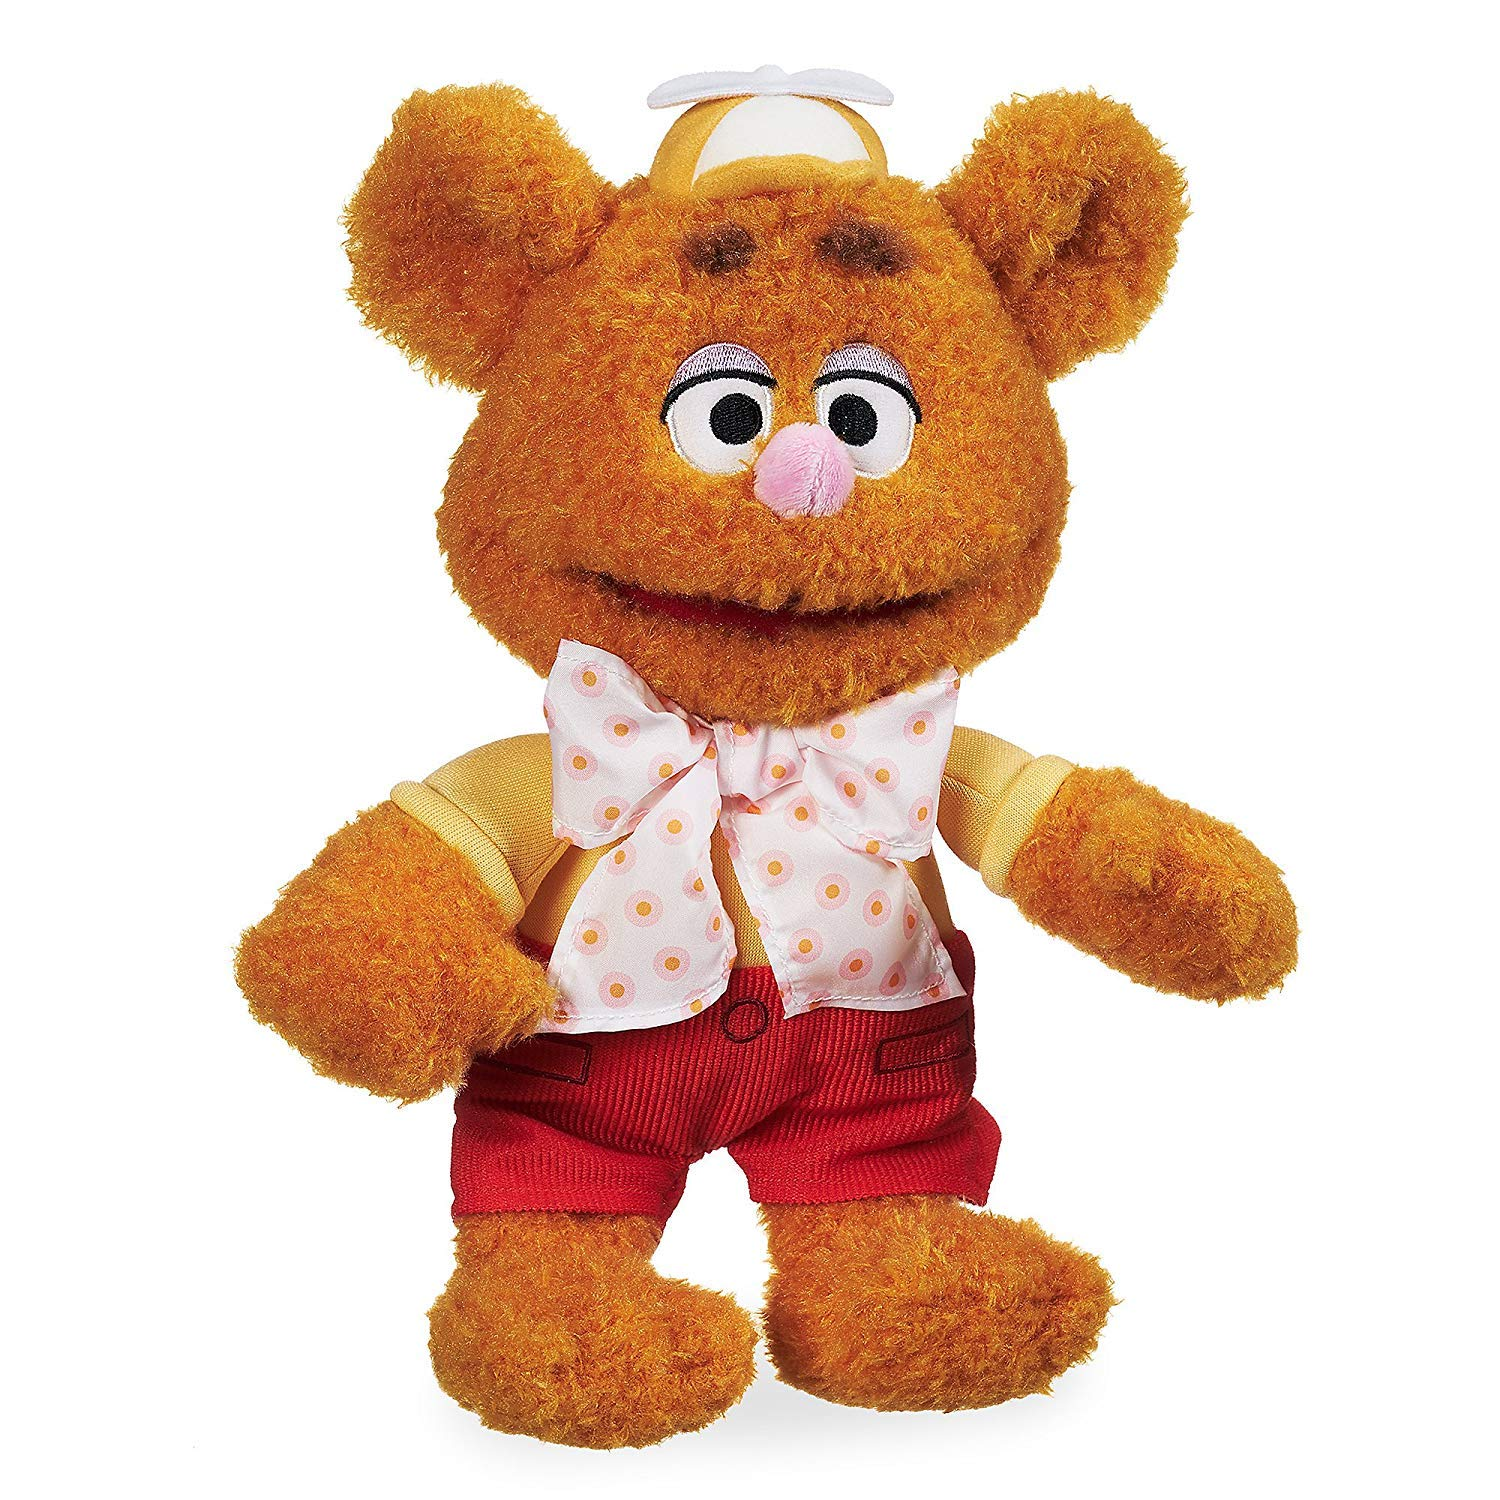 The Muppets Muppet Babies Wocka Wocka Fozzie Exclusive Feature Plush by Disney Junior Muppet